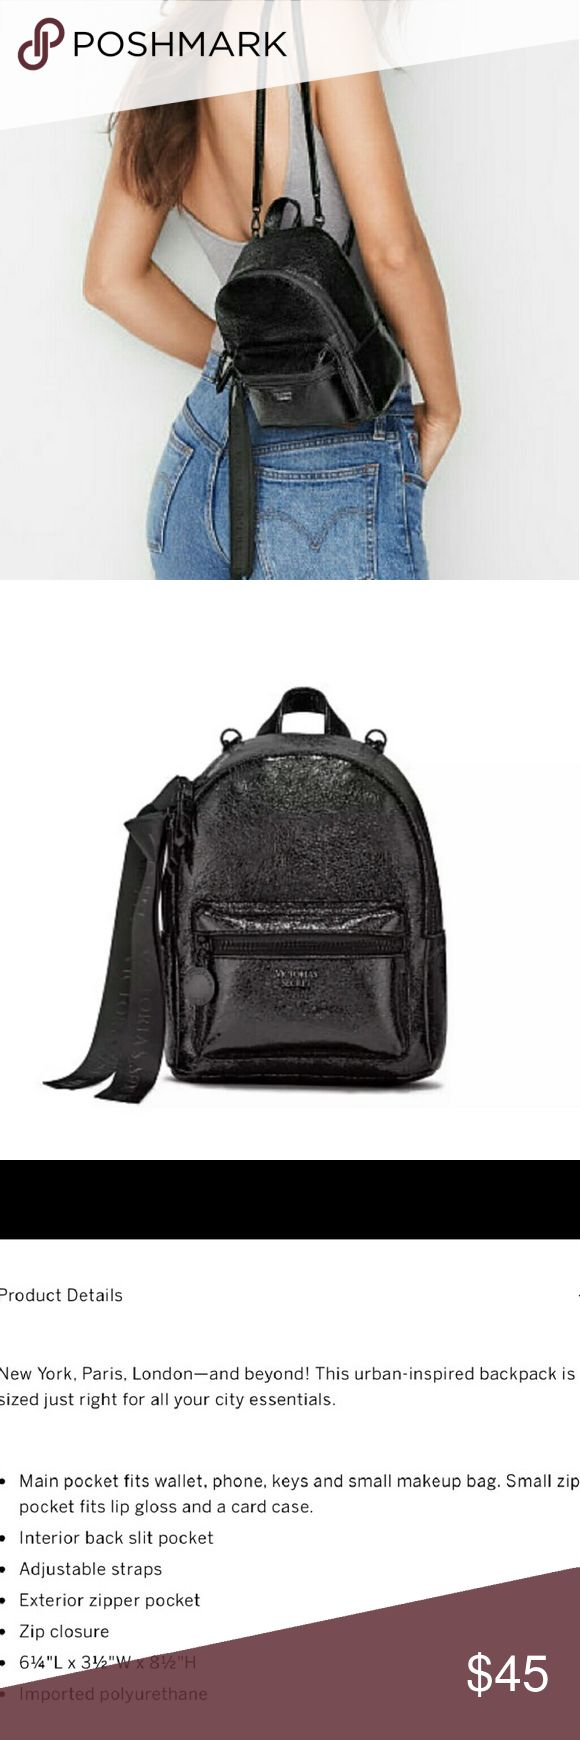 🆕 VS black ribbon backpack Brand new with tags  Metallic crackle city mini backpack  I own one myself and was amazed at how much it fits , it's the perfect everyday bag . Ribbons can stay on or come off, your choice.   measurements and details in picture above  Price is firm Victoria's Secret Bags Backpacks